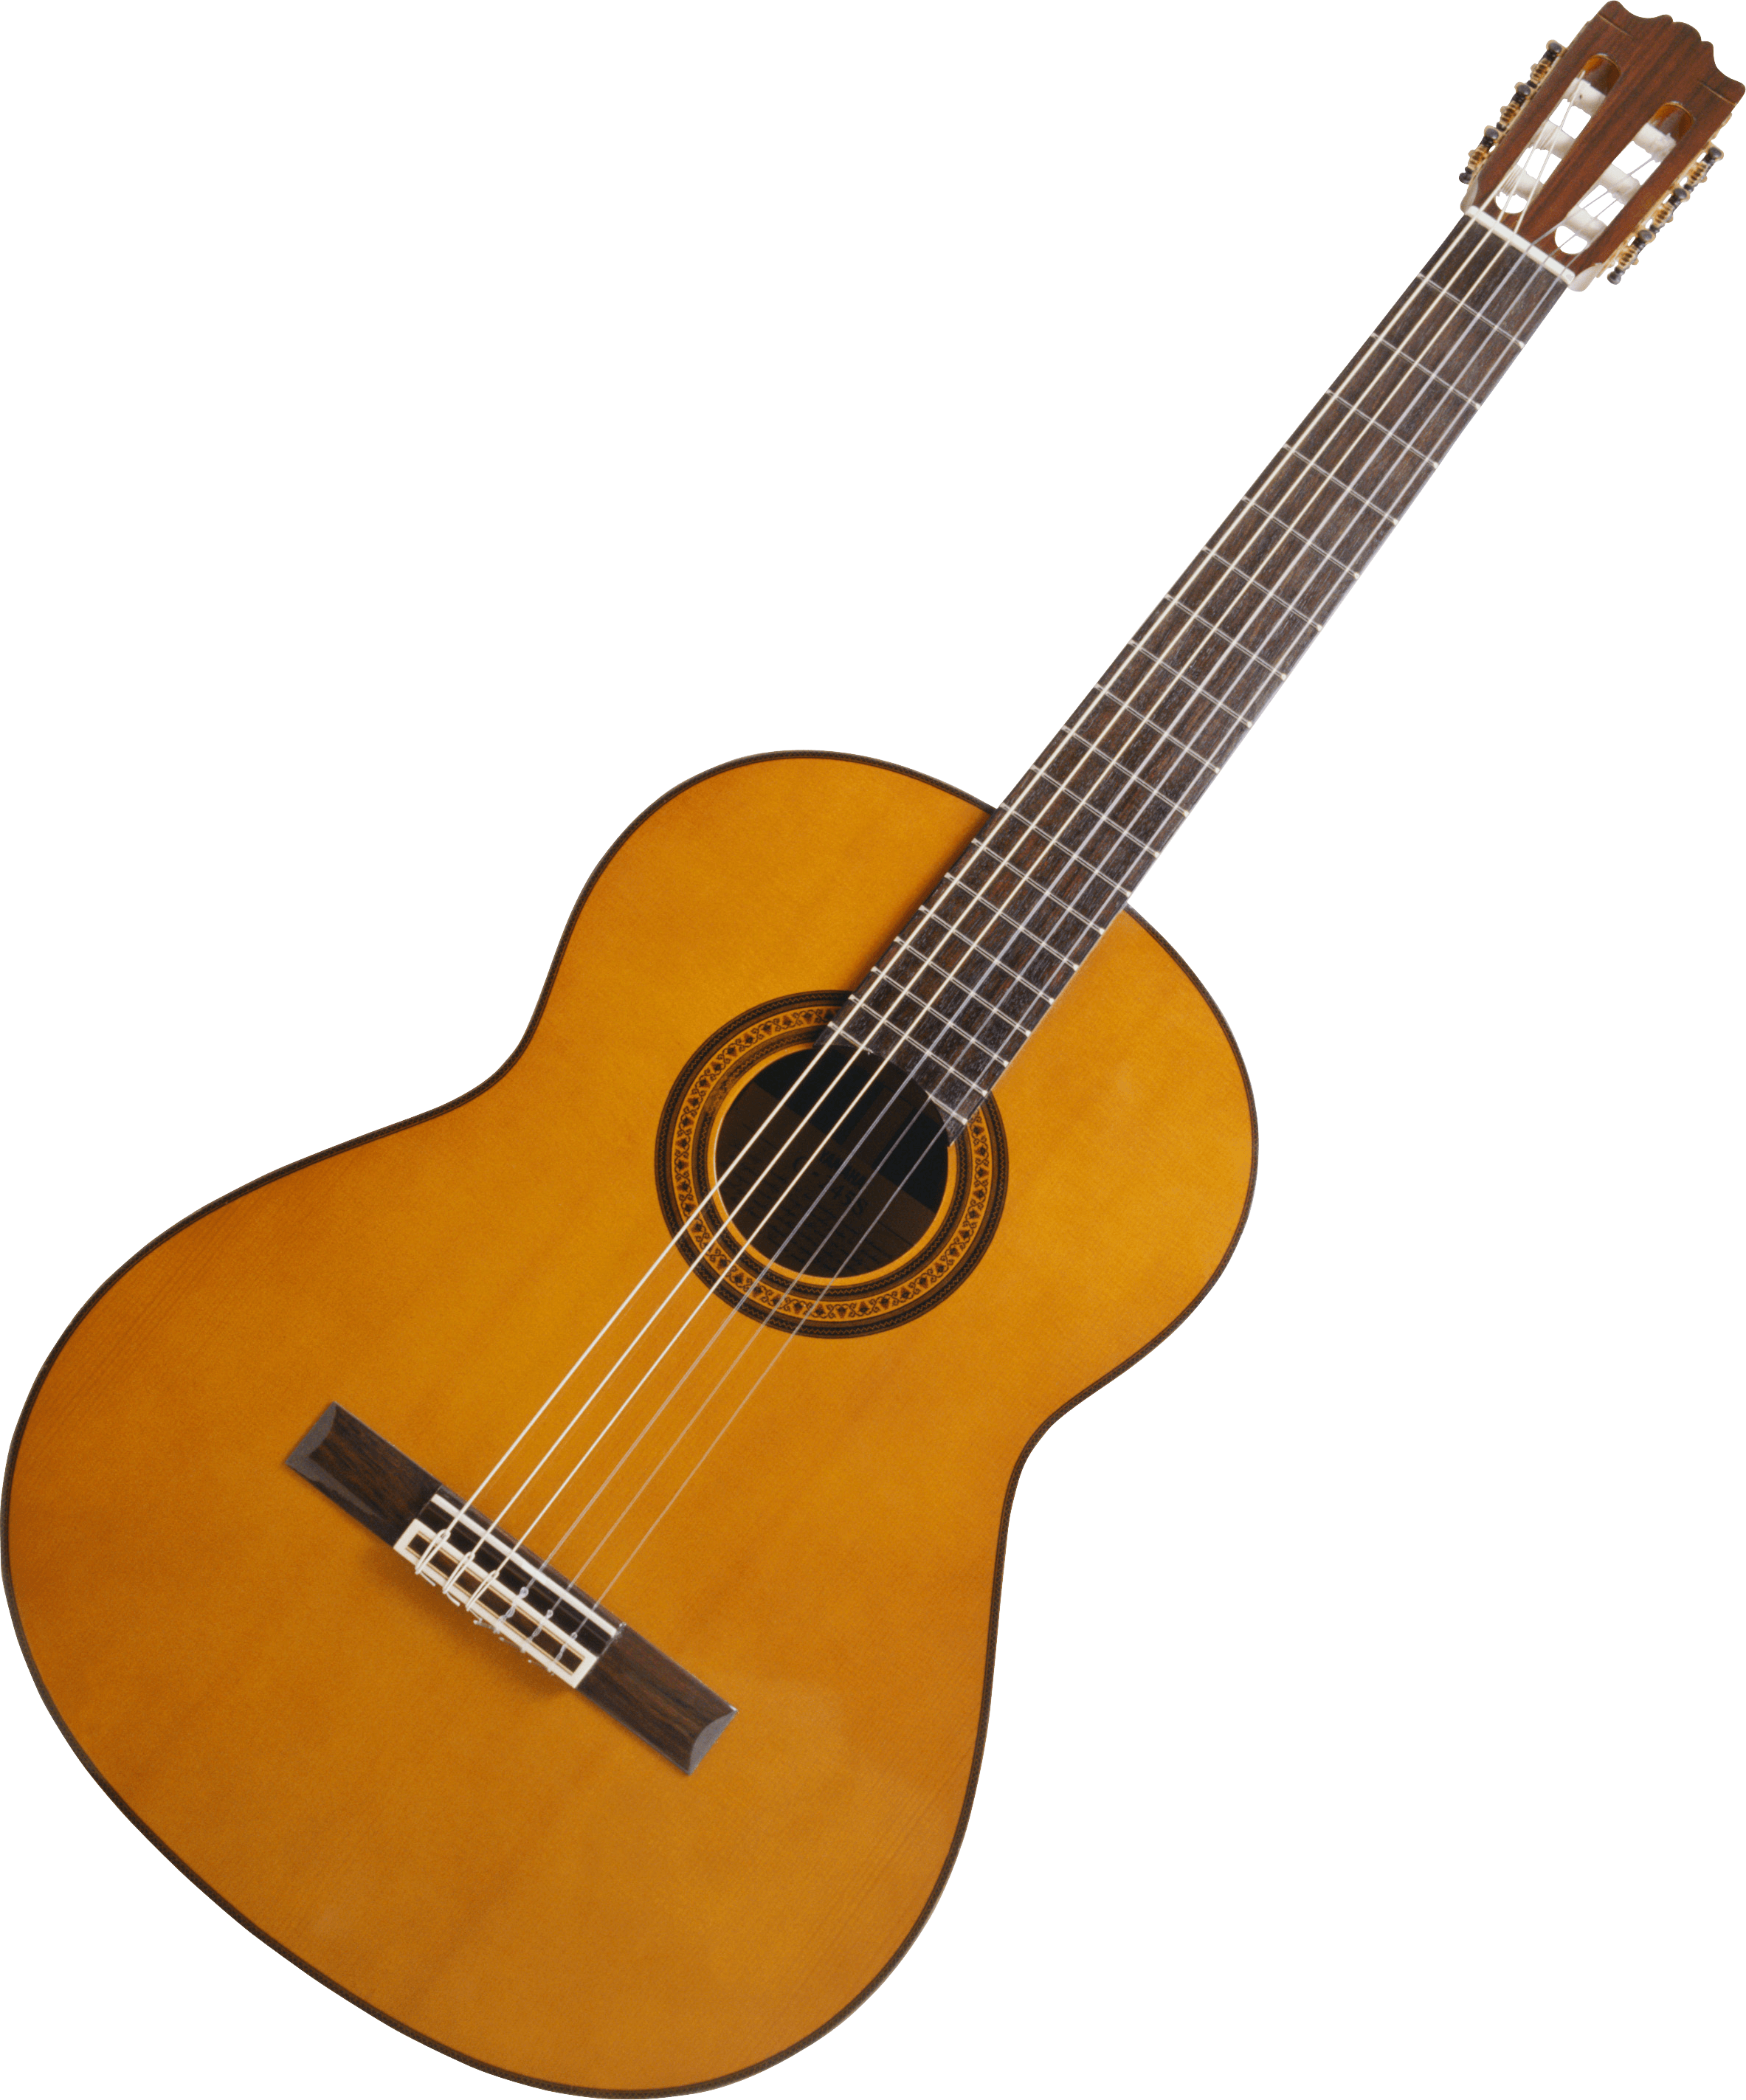 download guitar png image hq png image freepngimg beaver clipart but for free beaver clipart black and white